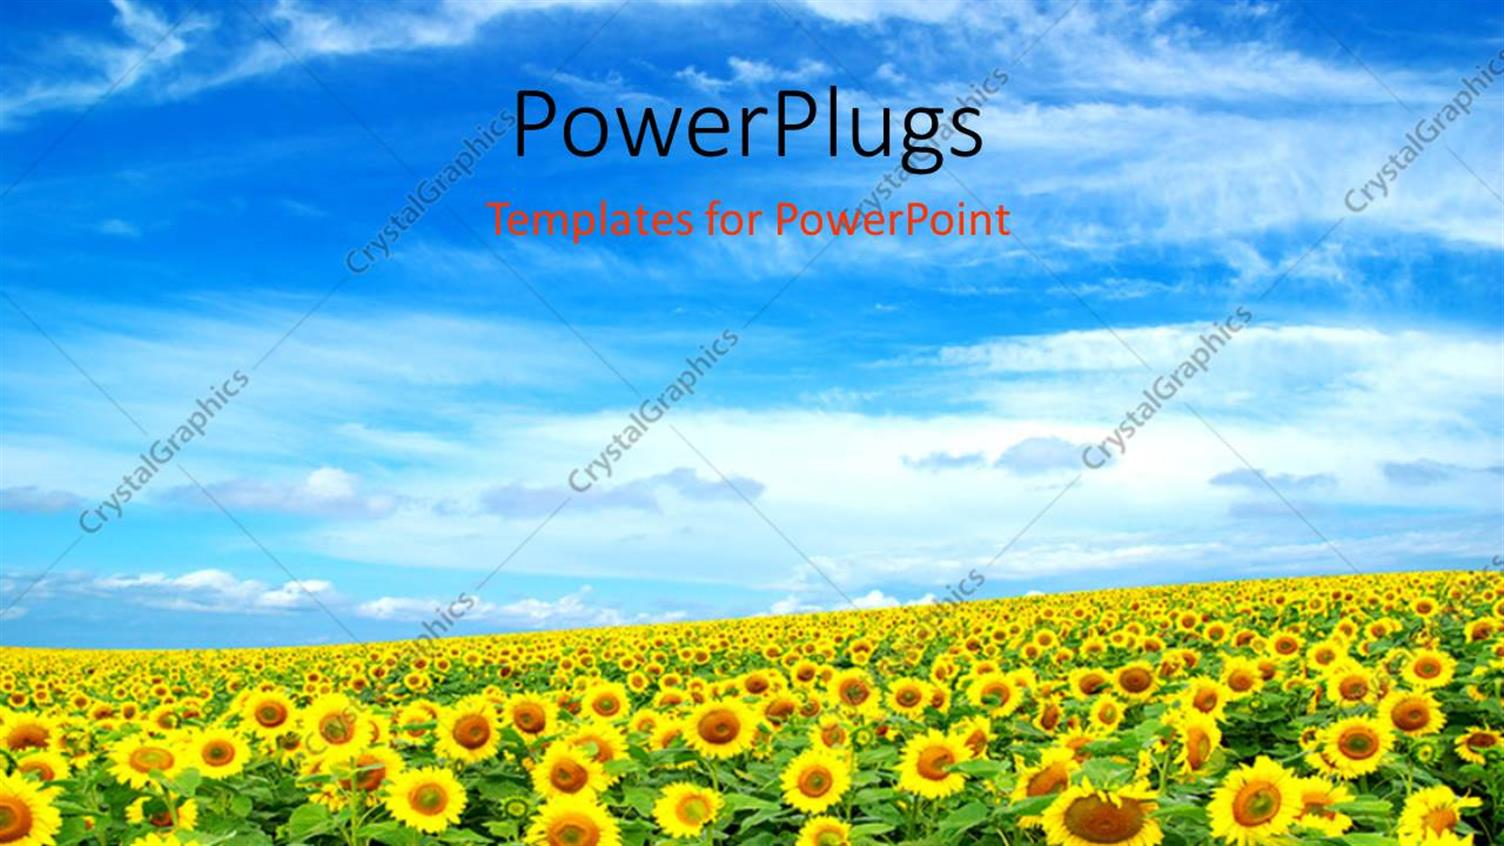 PowerPoint Template Displaying a Sunflower Farm with Clouds in the Blue Sky